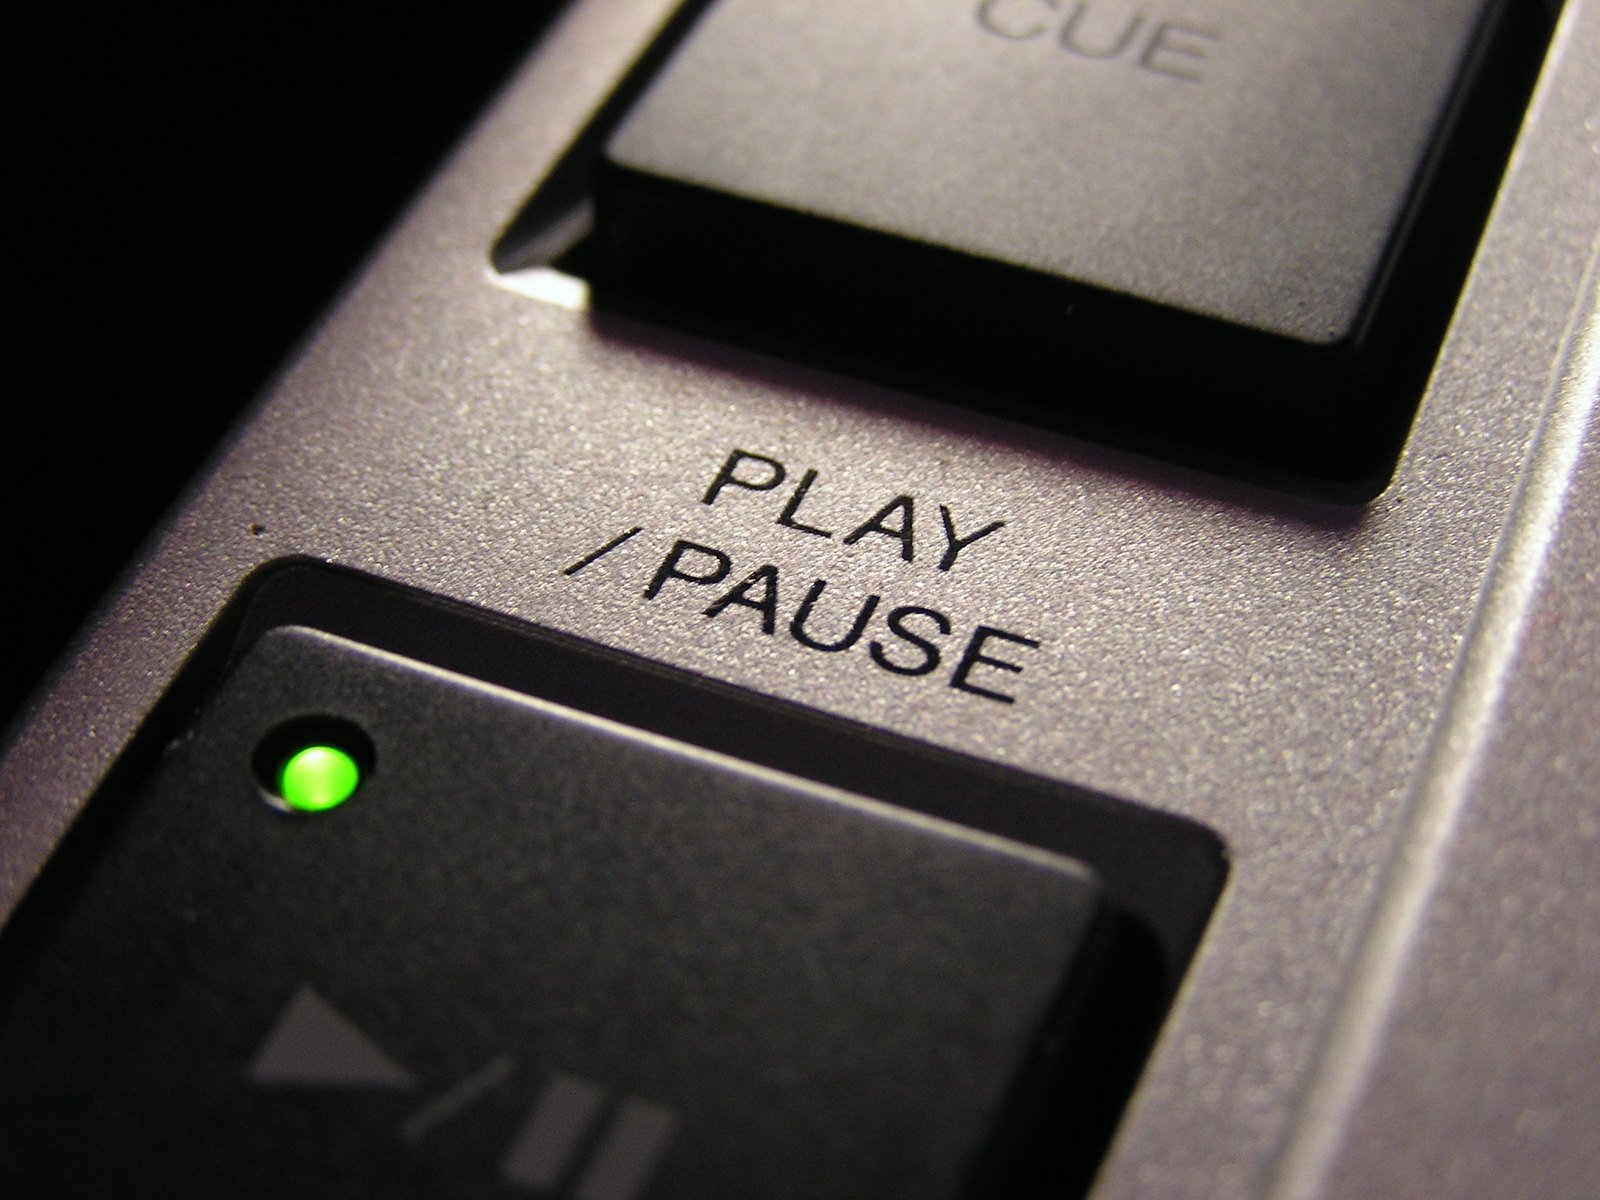 Play and pause